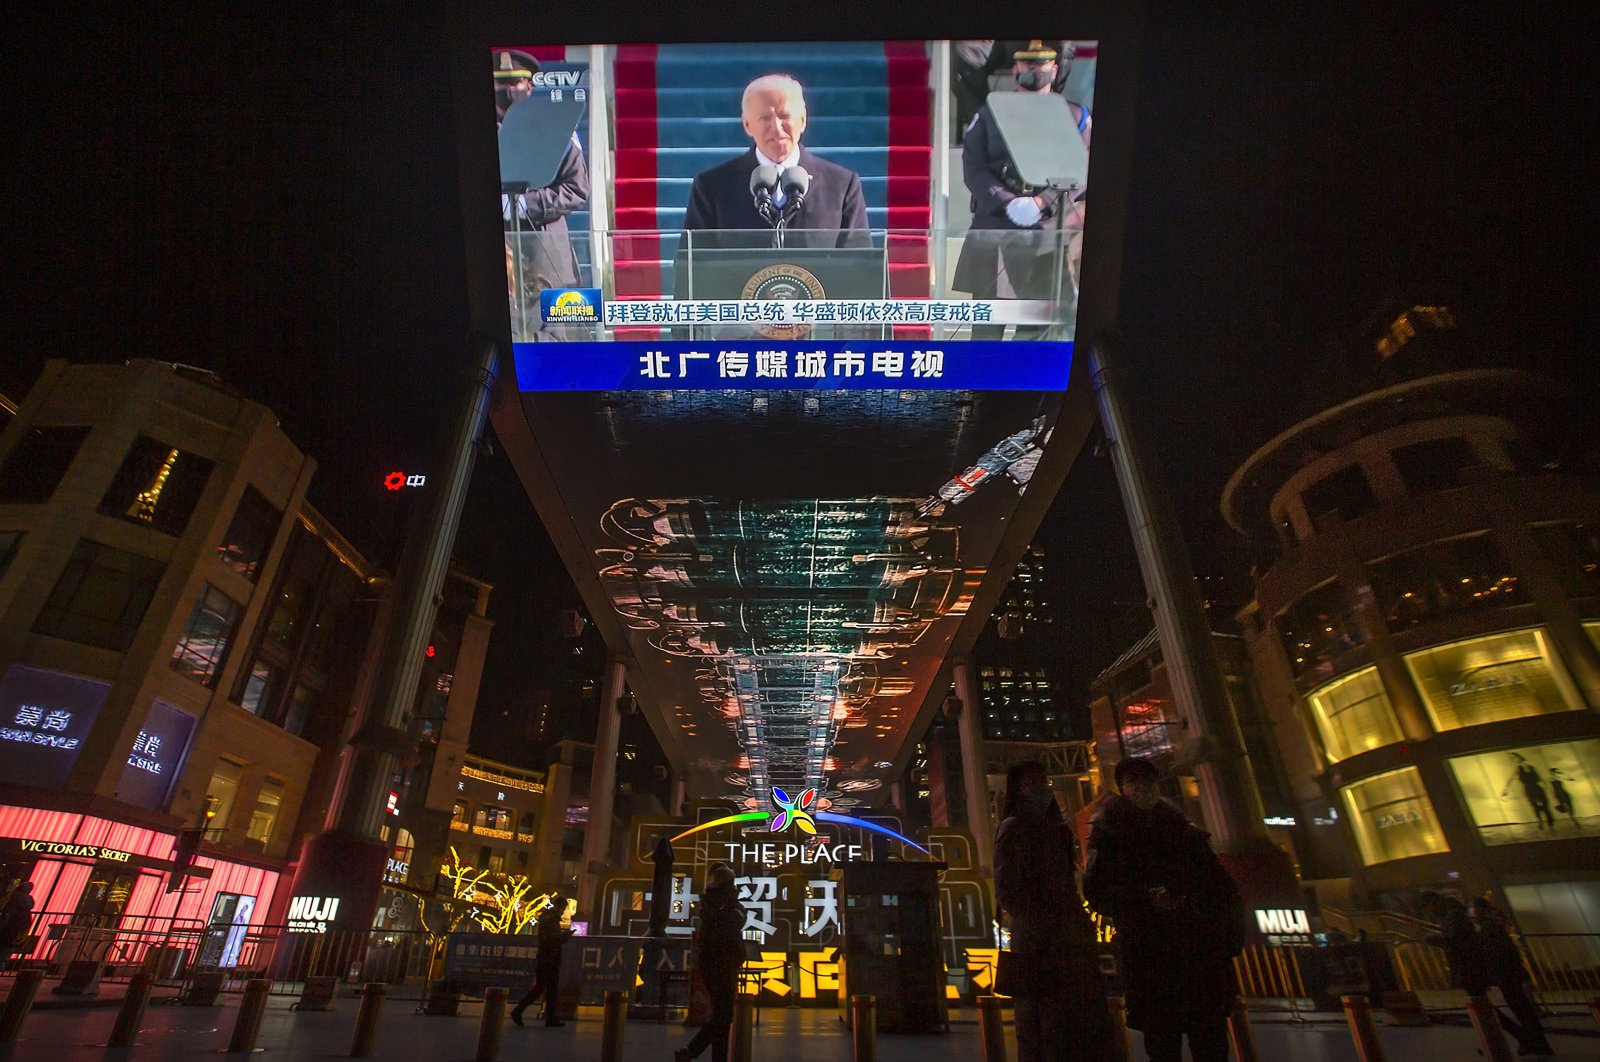 A large video screen shows a government news report about the inauguration of U.S. President Joe Biden at The Place shopping mall in Beijing, China, Jan. 21, 2021. (AP Photo)